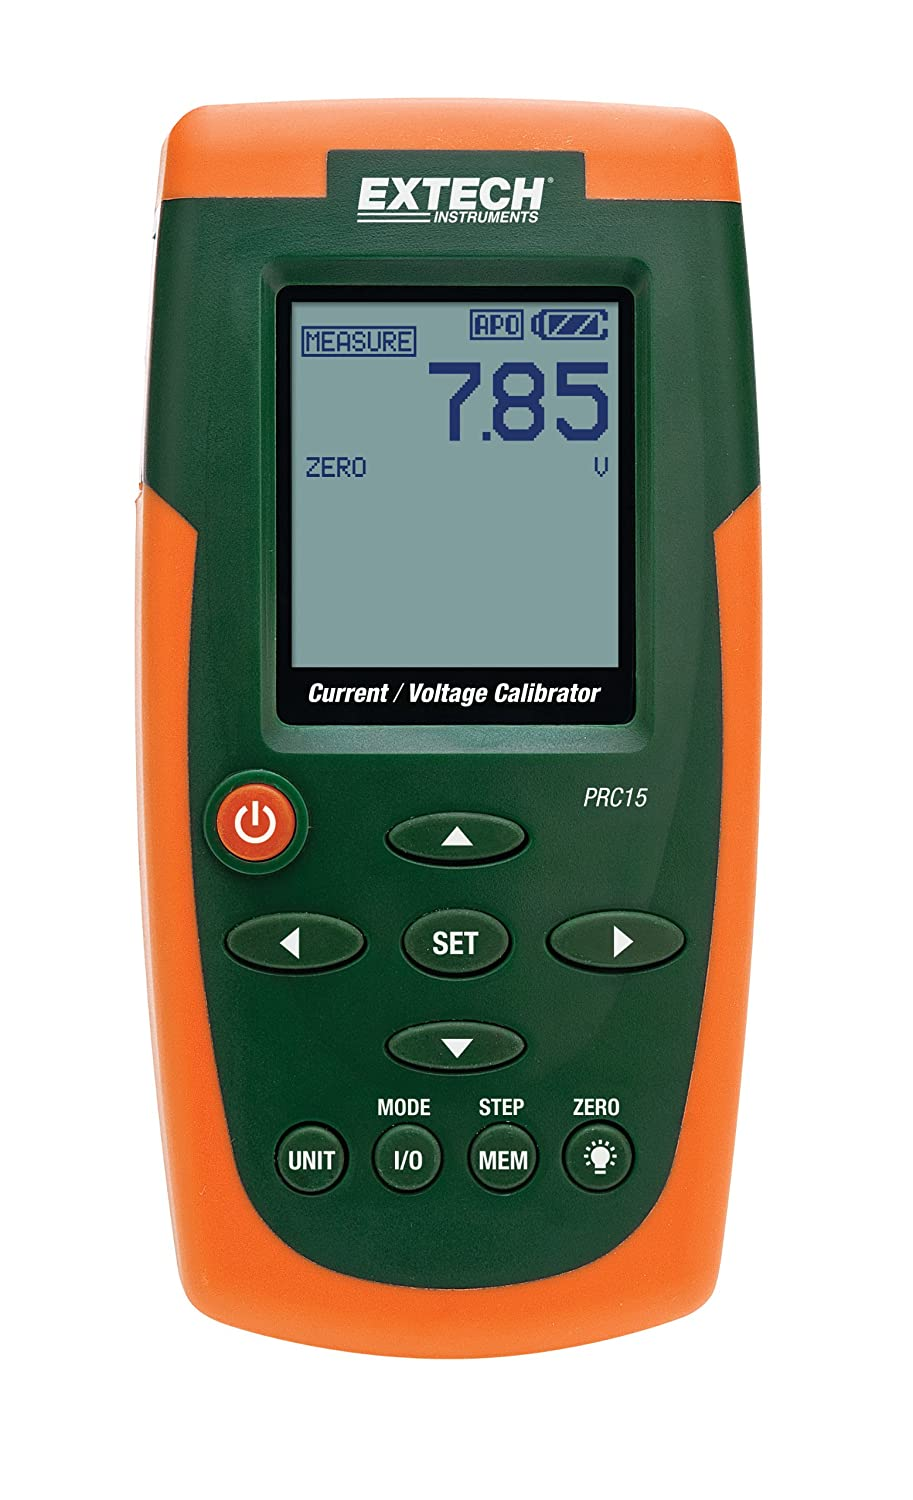 Extech PRC15 Current and Voltage Calibrator and Meter